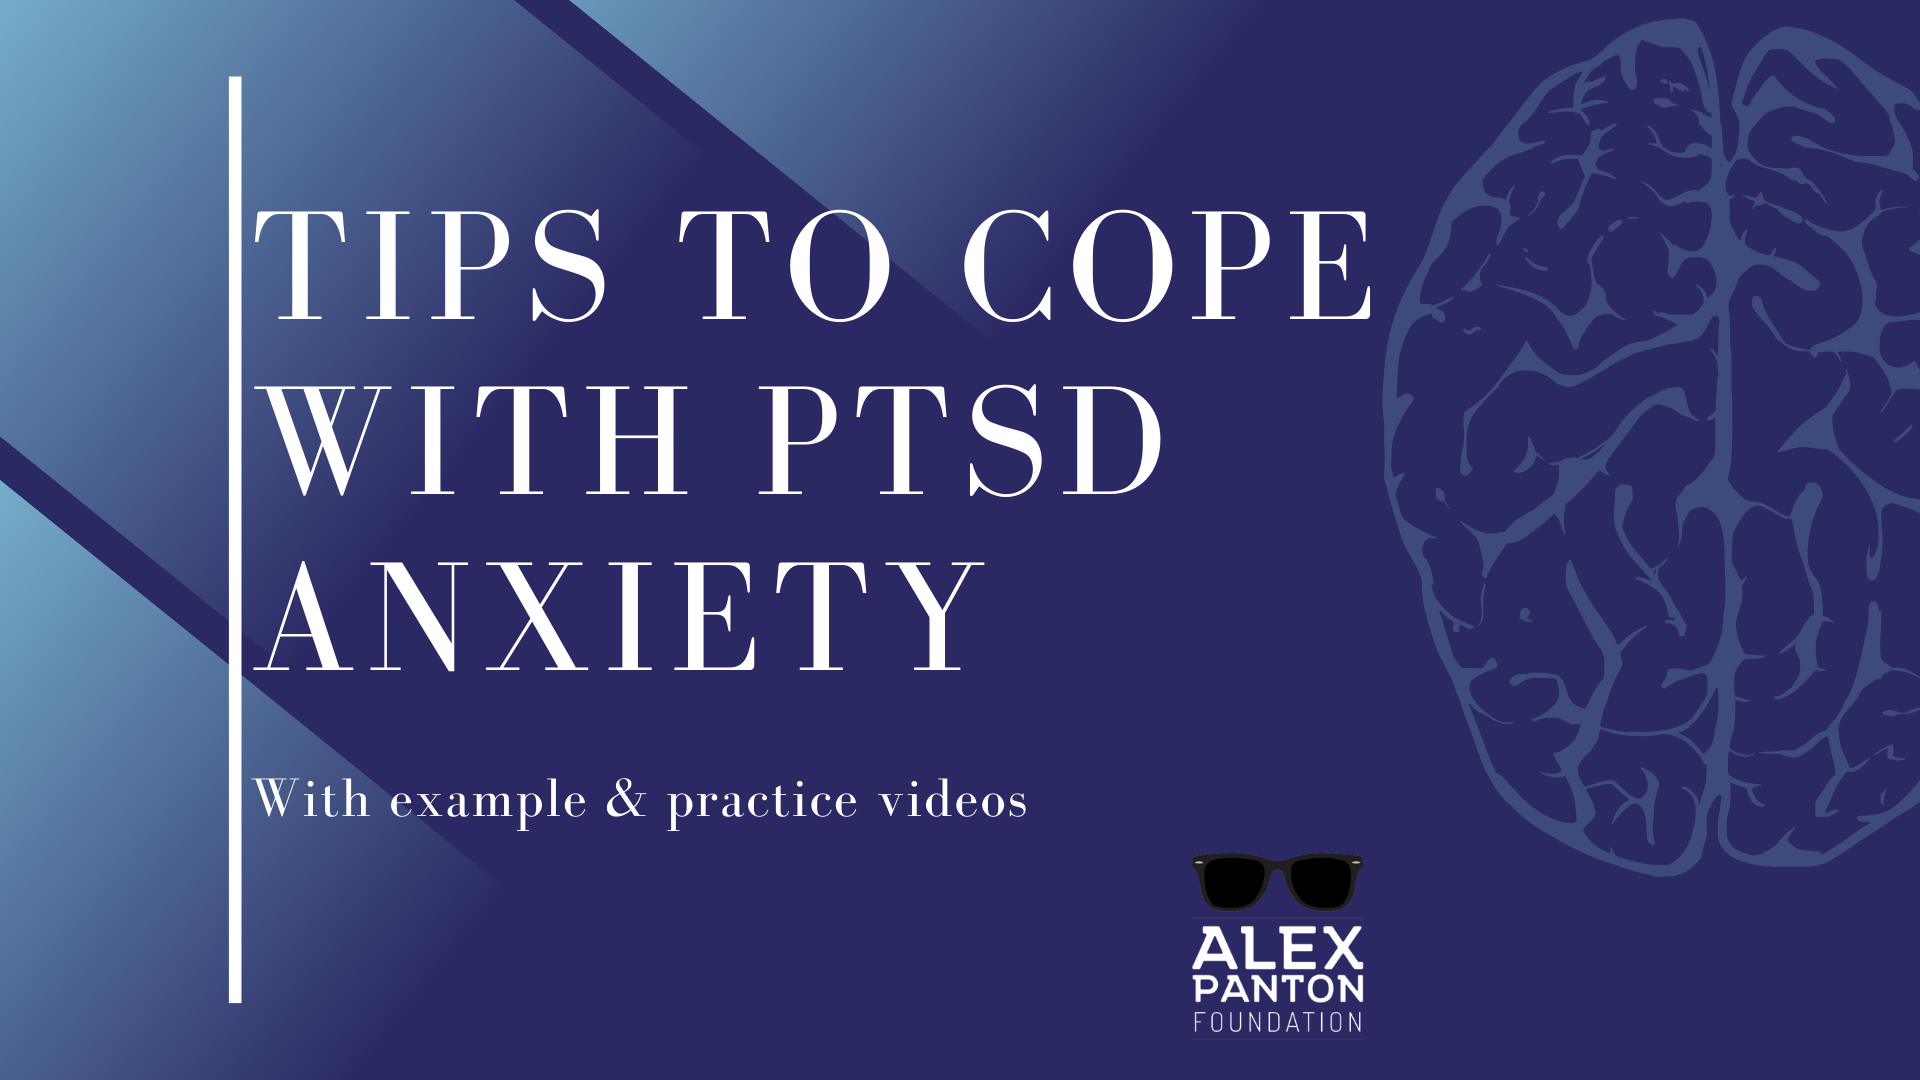 Tips to Cope with PTSD Anxiety